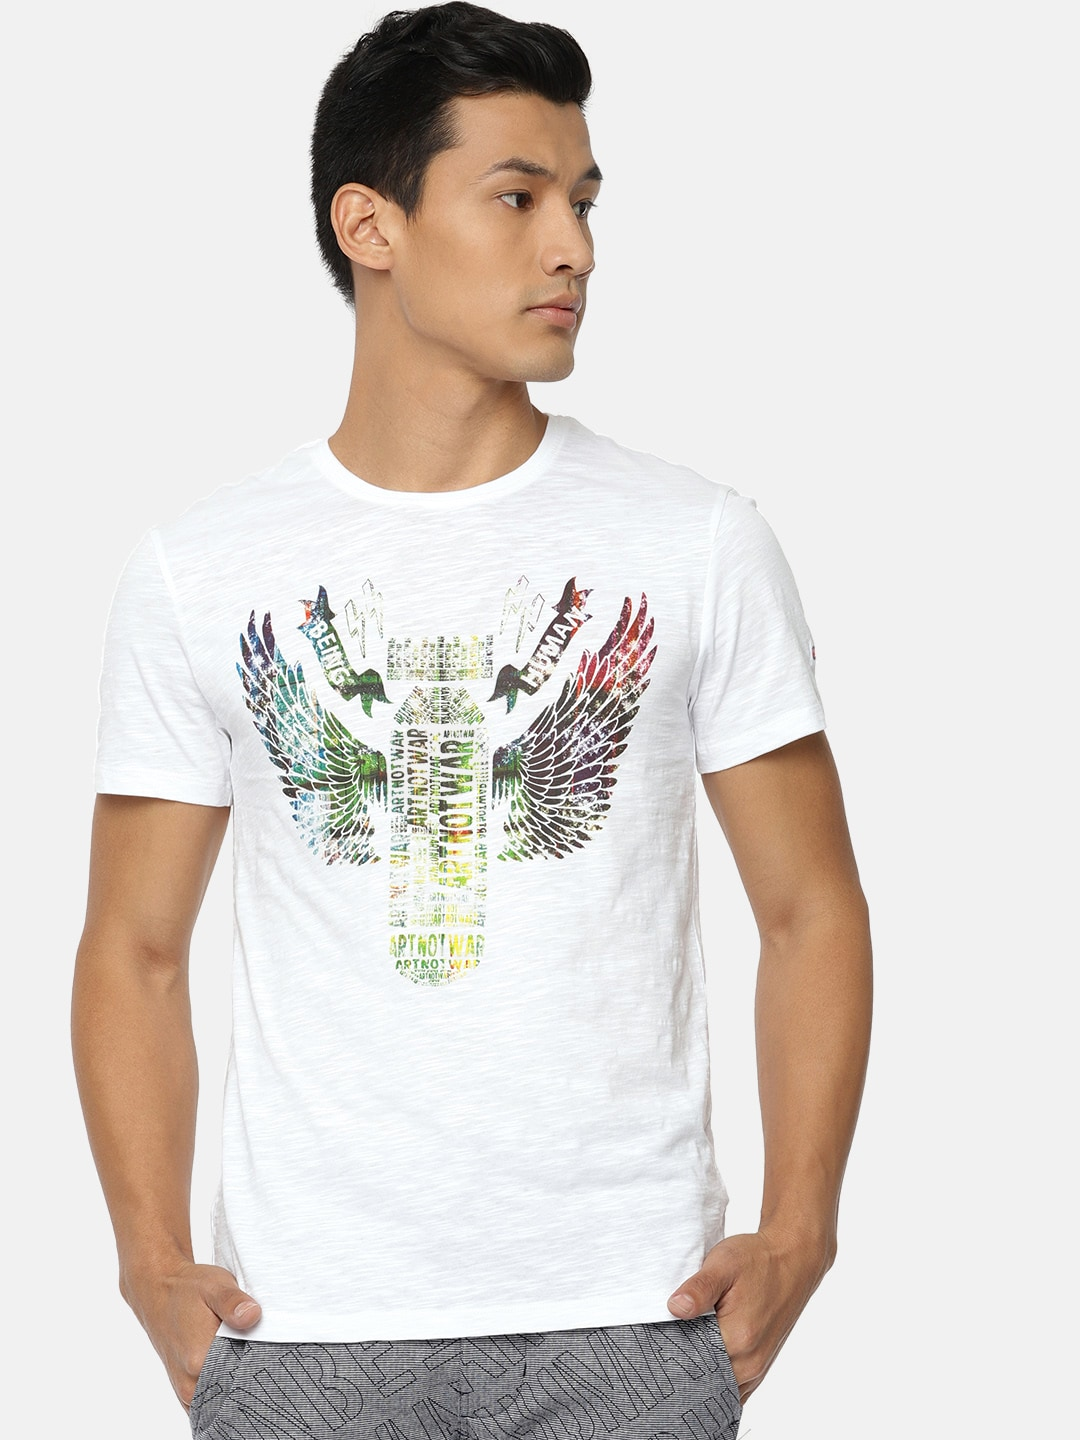 4801ad4bc Being Human T Shirts Online Shopping In India